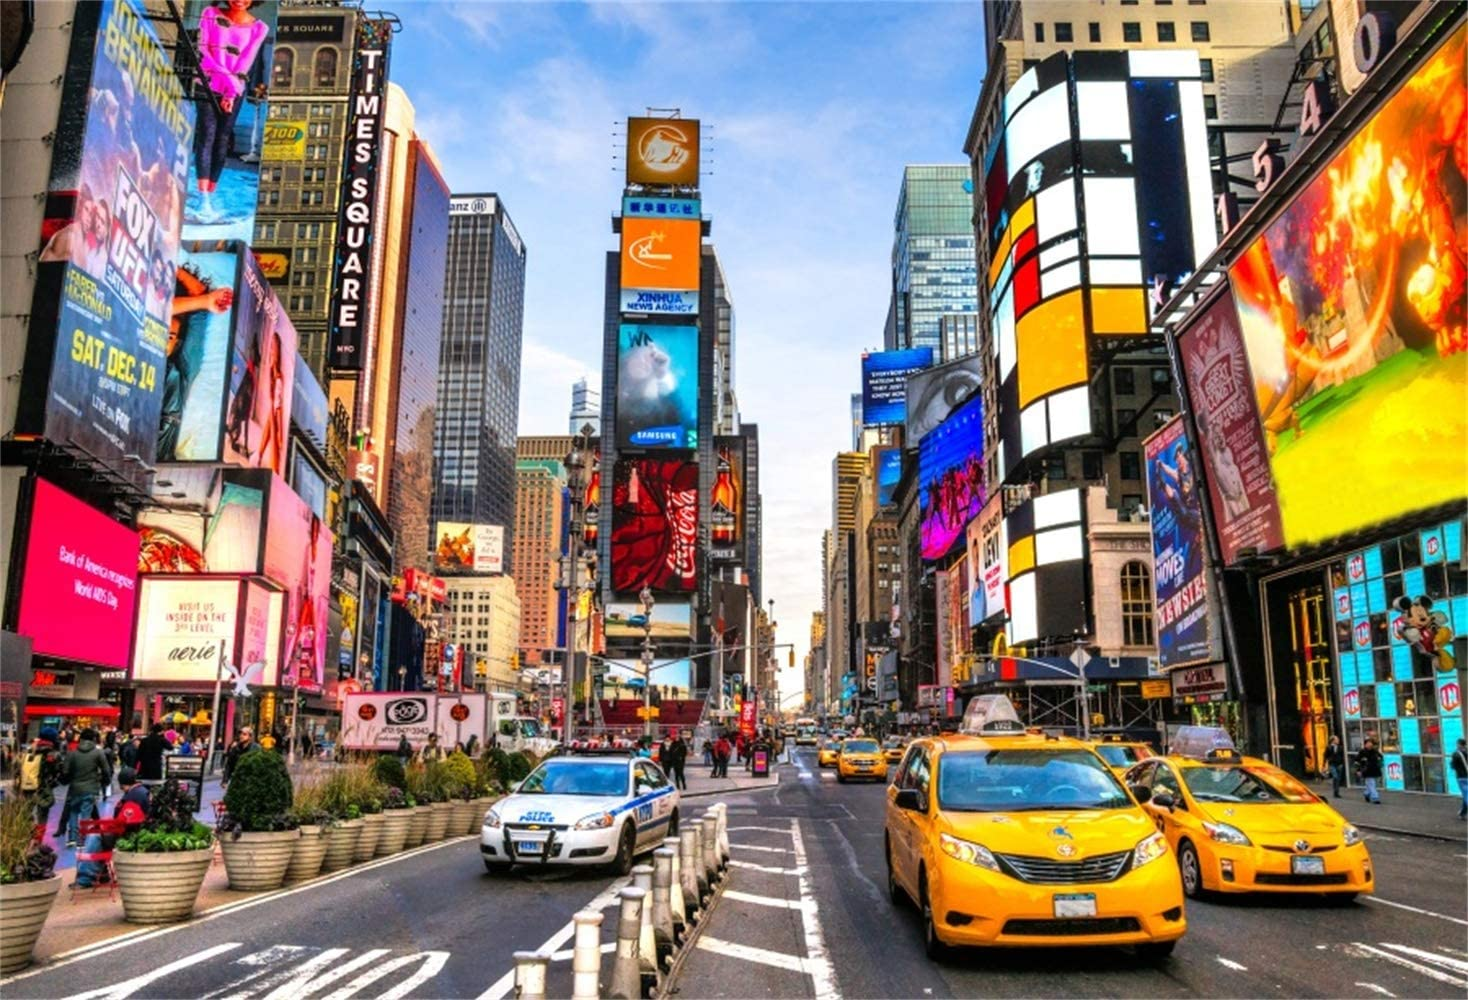 8x6.5ft New York Times Square Background Modern City Skyscrapers Polyester Photography Backdrops Clear Sky Various Advertising Board Yellow Taxi Car Financial District Film Shooting Video Studio